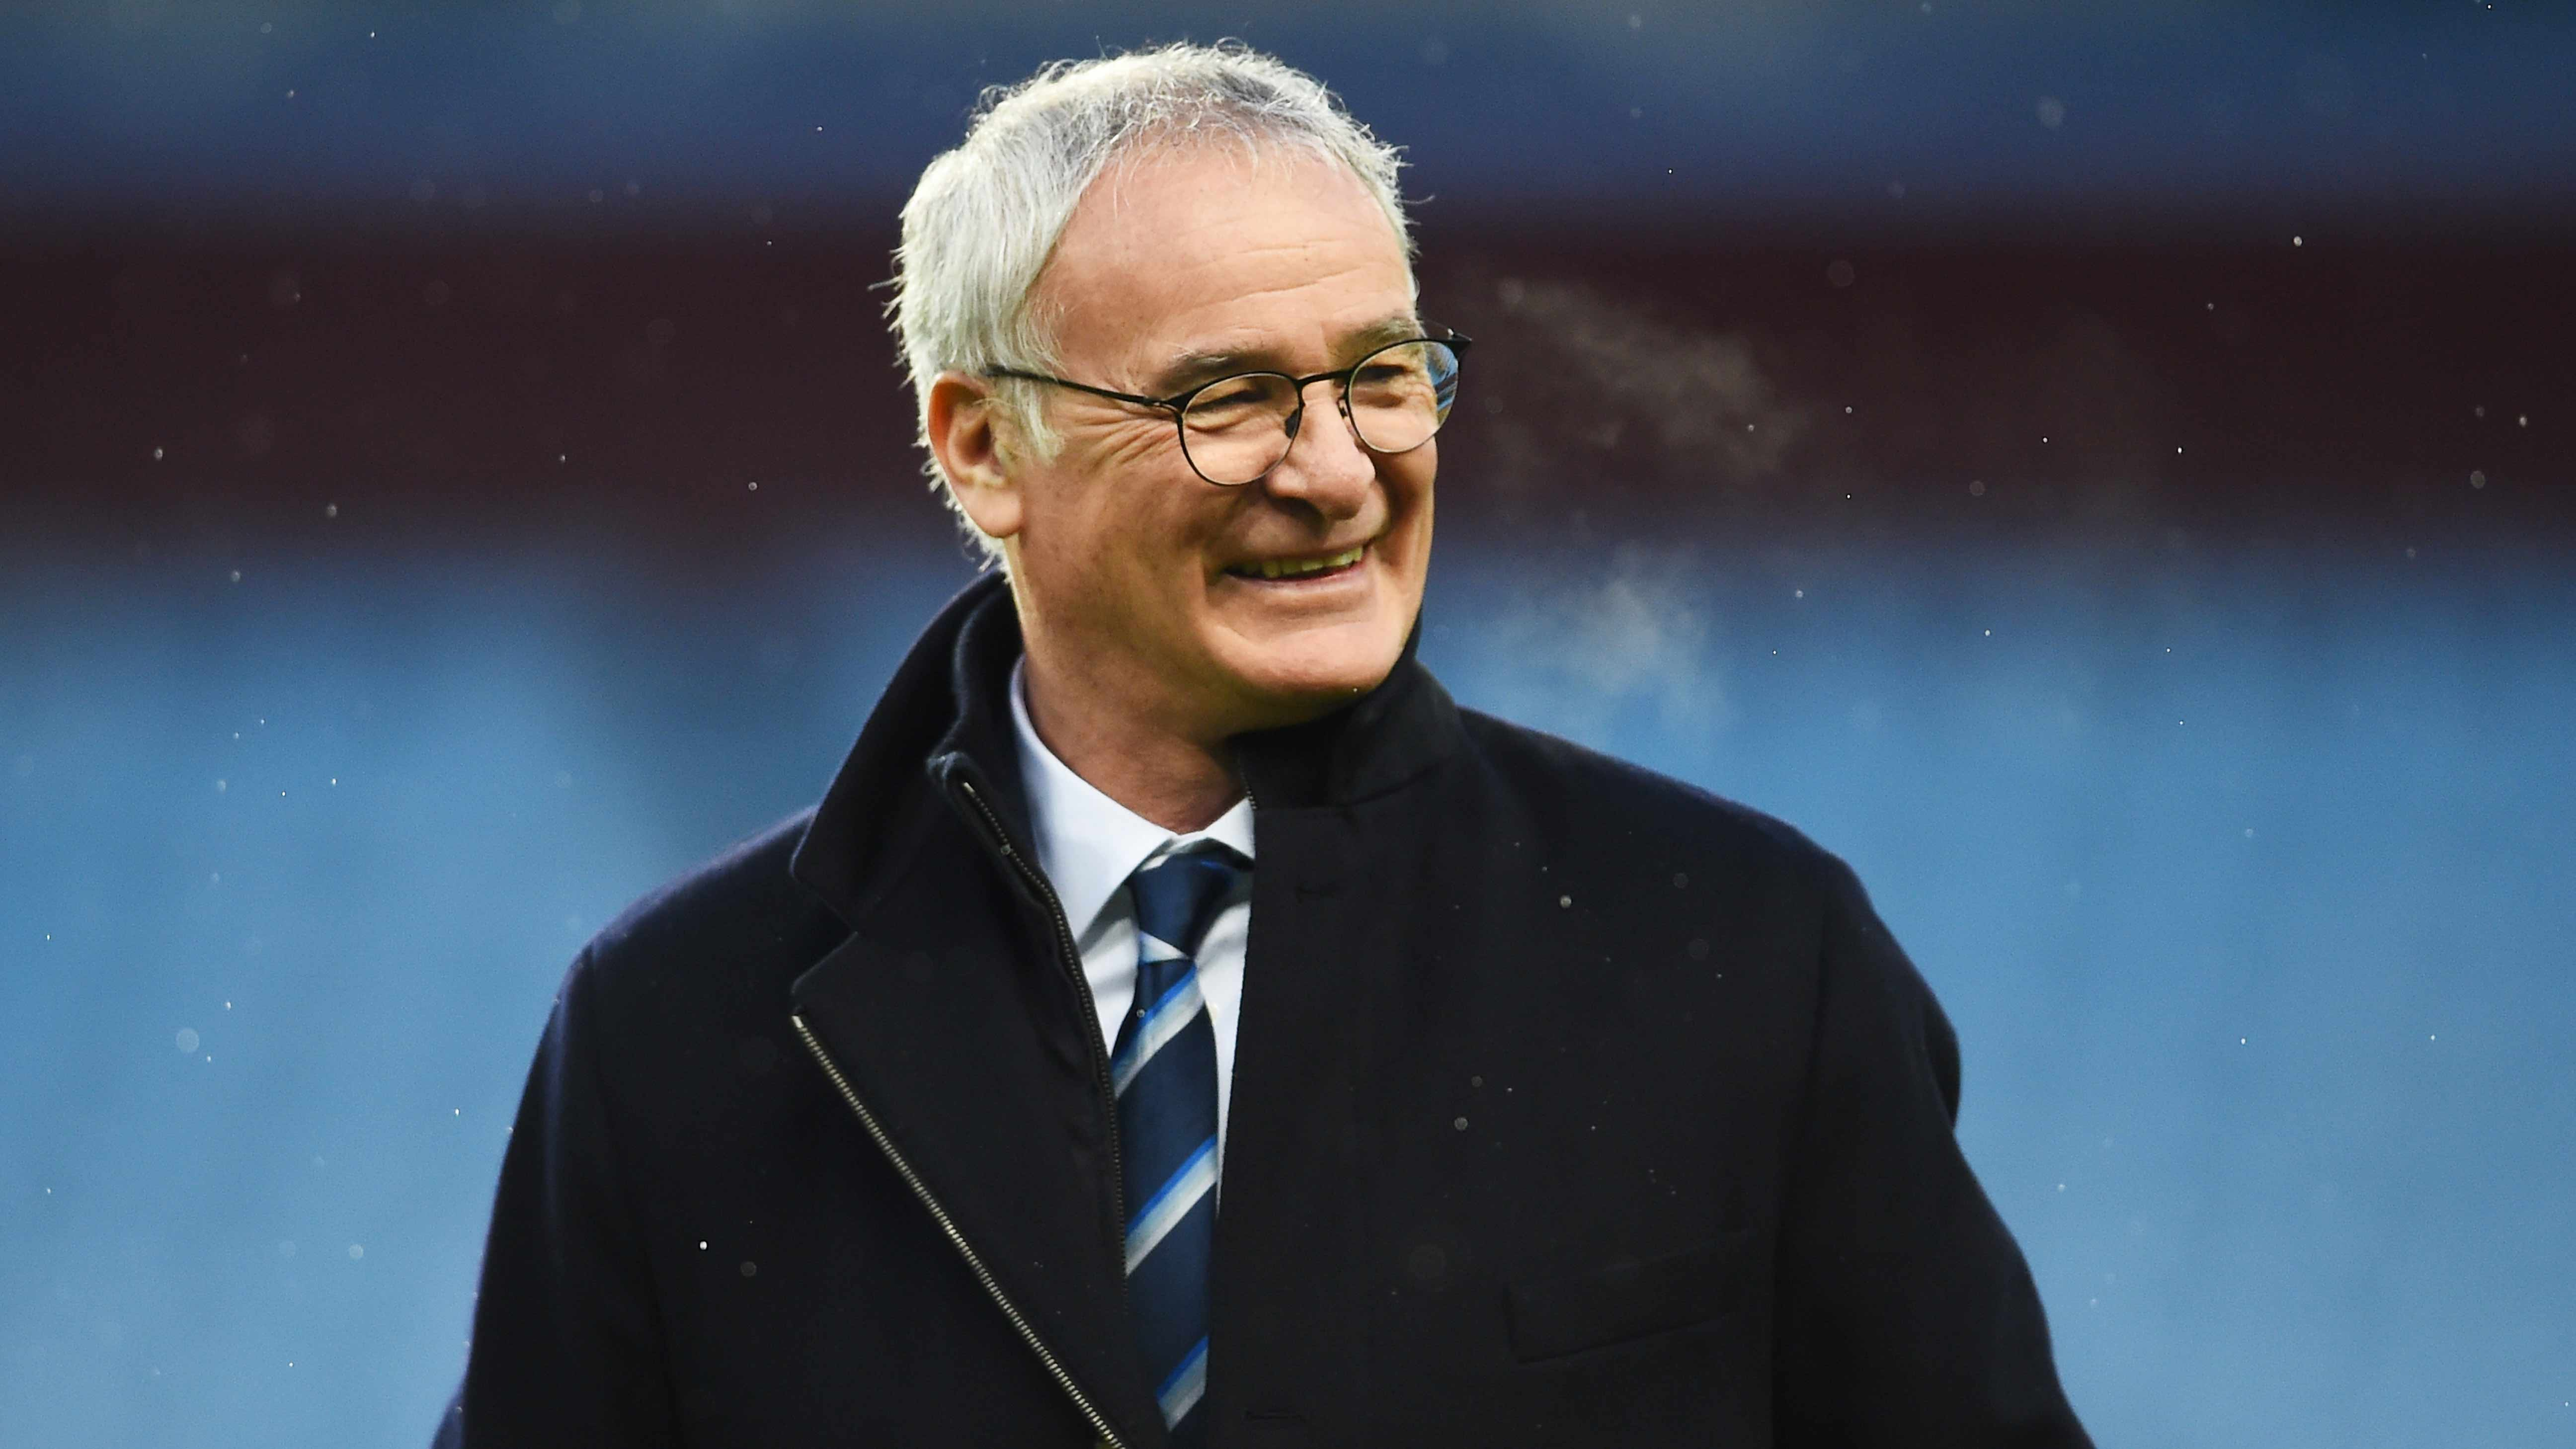 Leicester boss Ranieri sets his side target of 79 EPL points